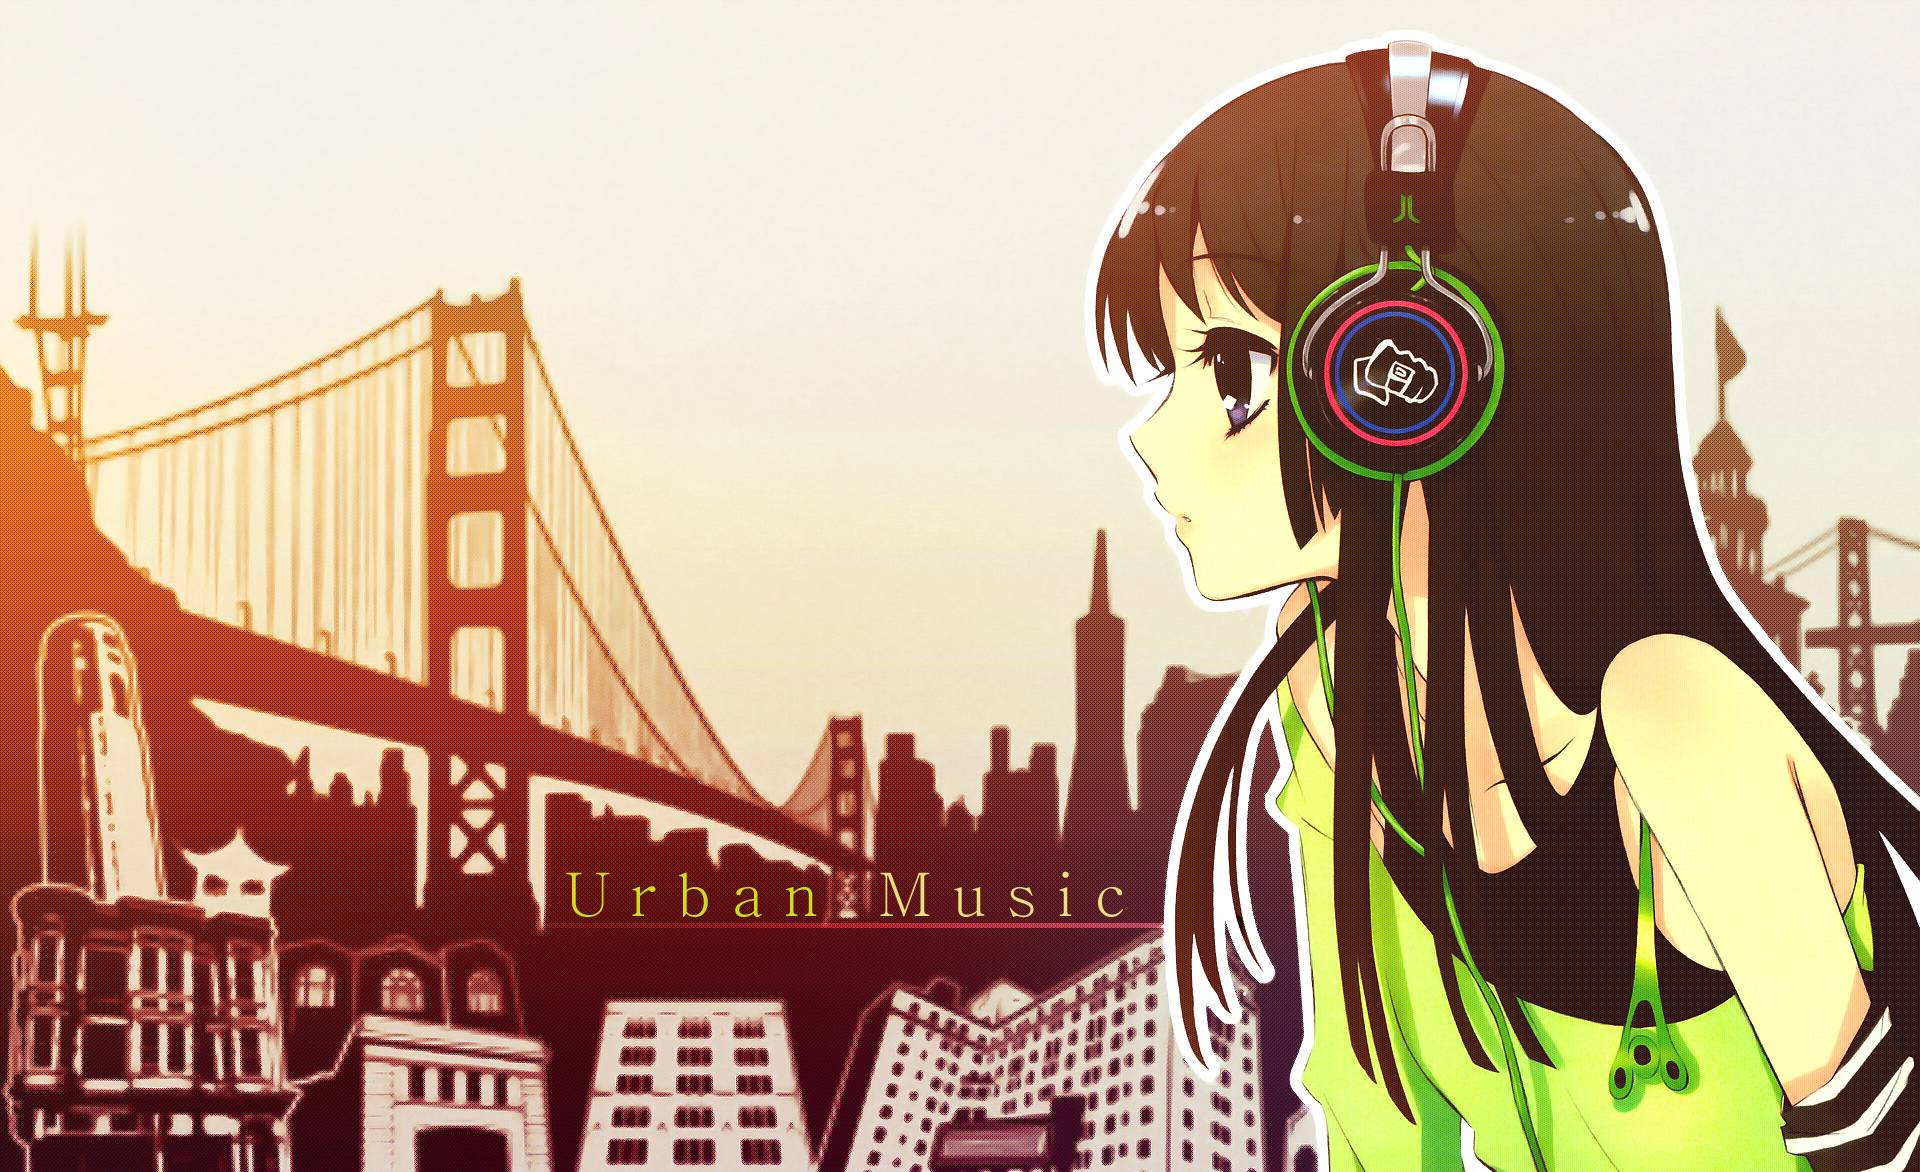 Wallpaper Manga Music